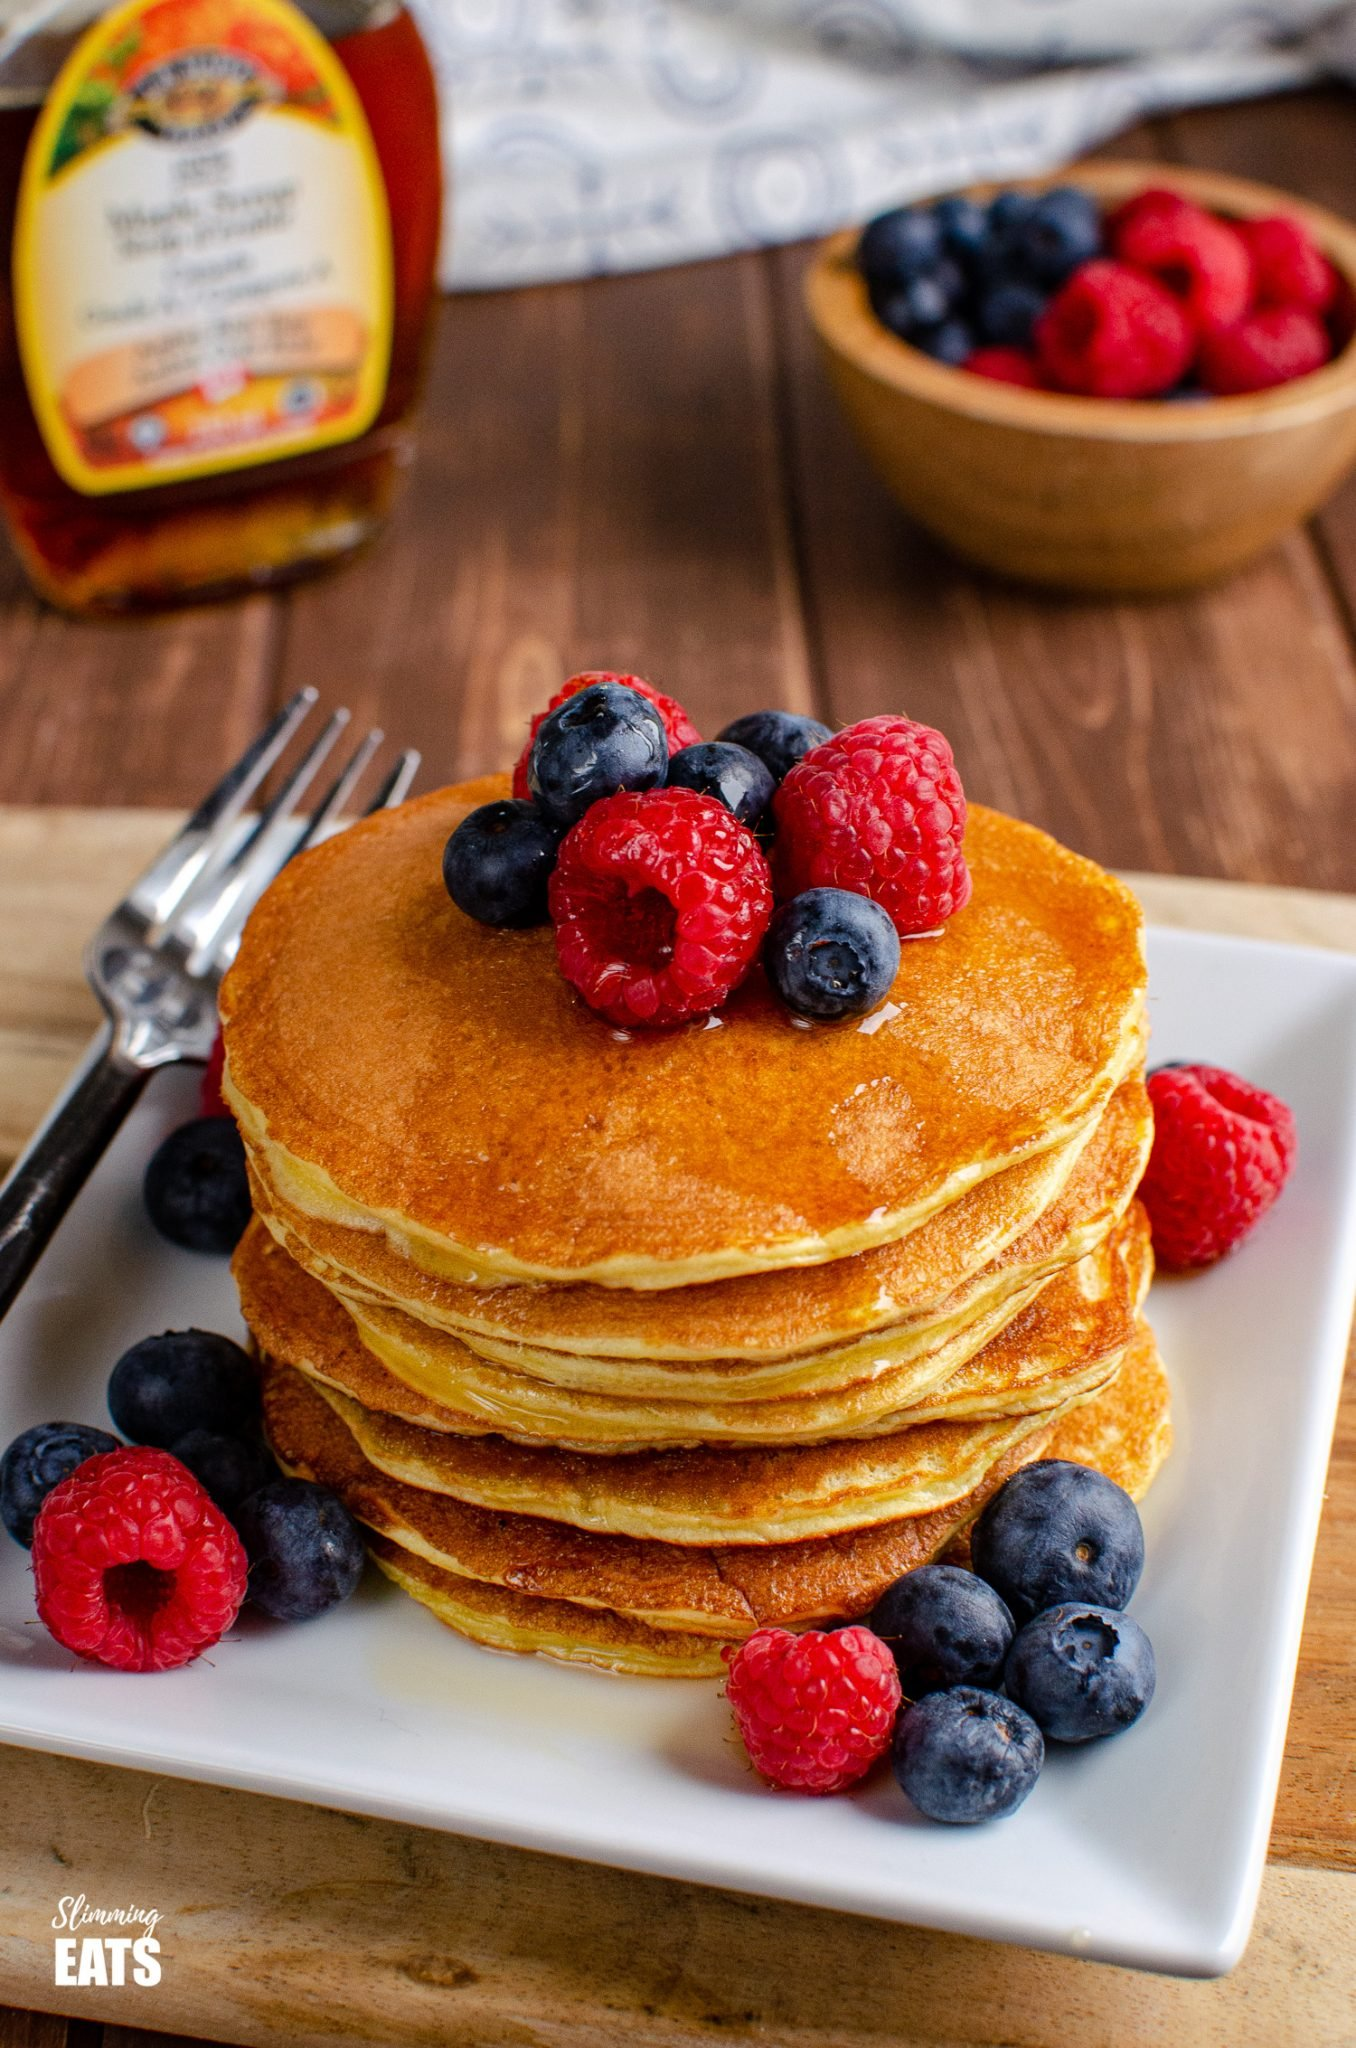 American Style Pancakes on white plate with fruit, maple syrup bottle in background